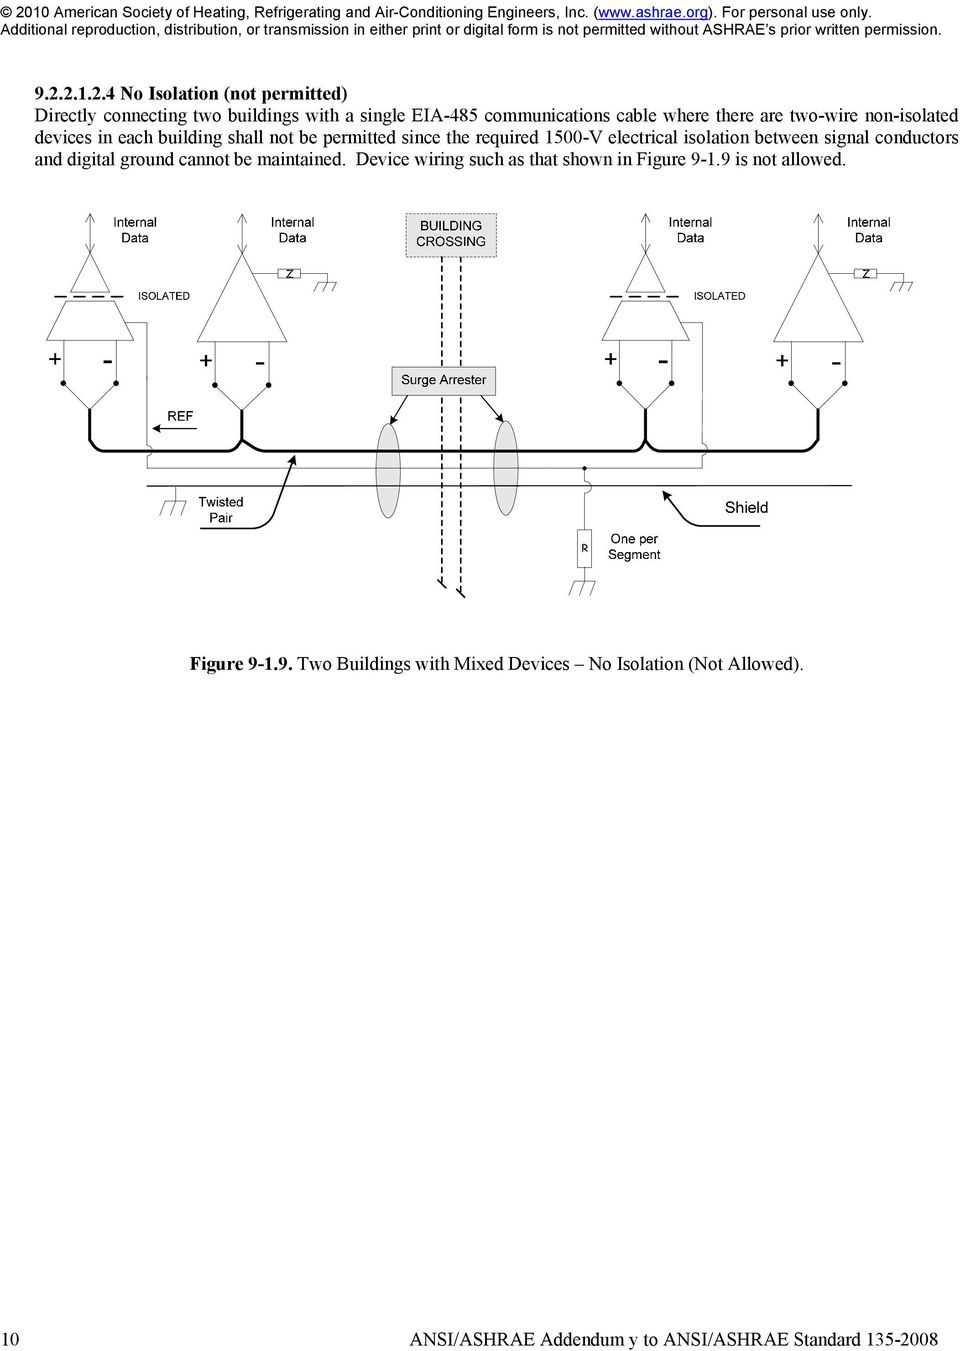 Ashrae Standard Bacnet A Data Communication Protocol For Building Wiring Between Signal Conductors And Digital Ground Cannot Be Maintained Device Such As That Shown